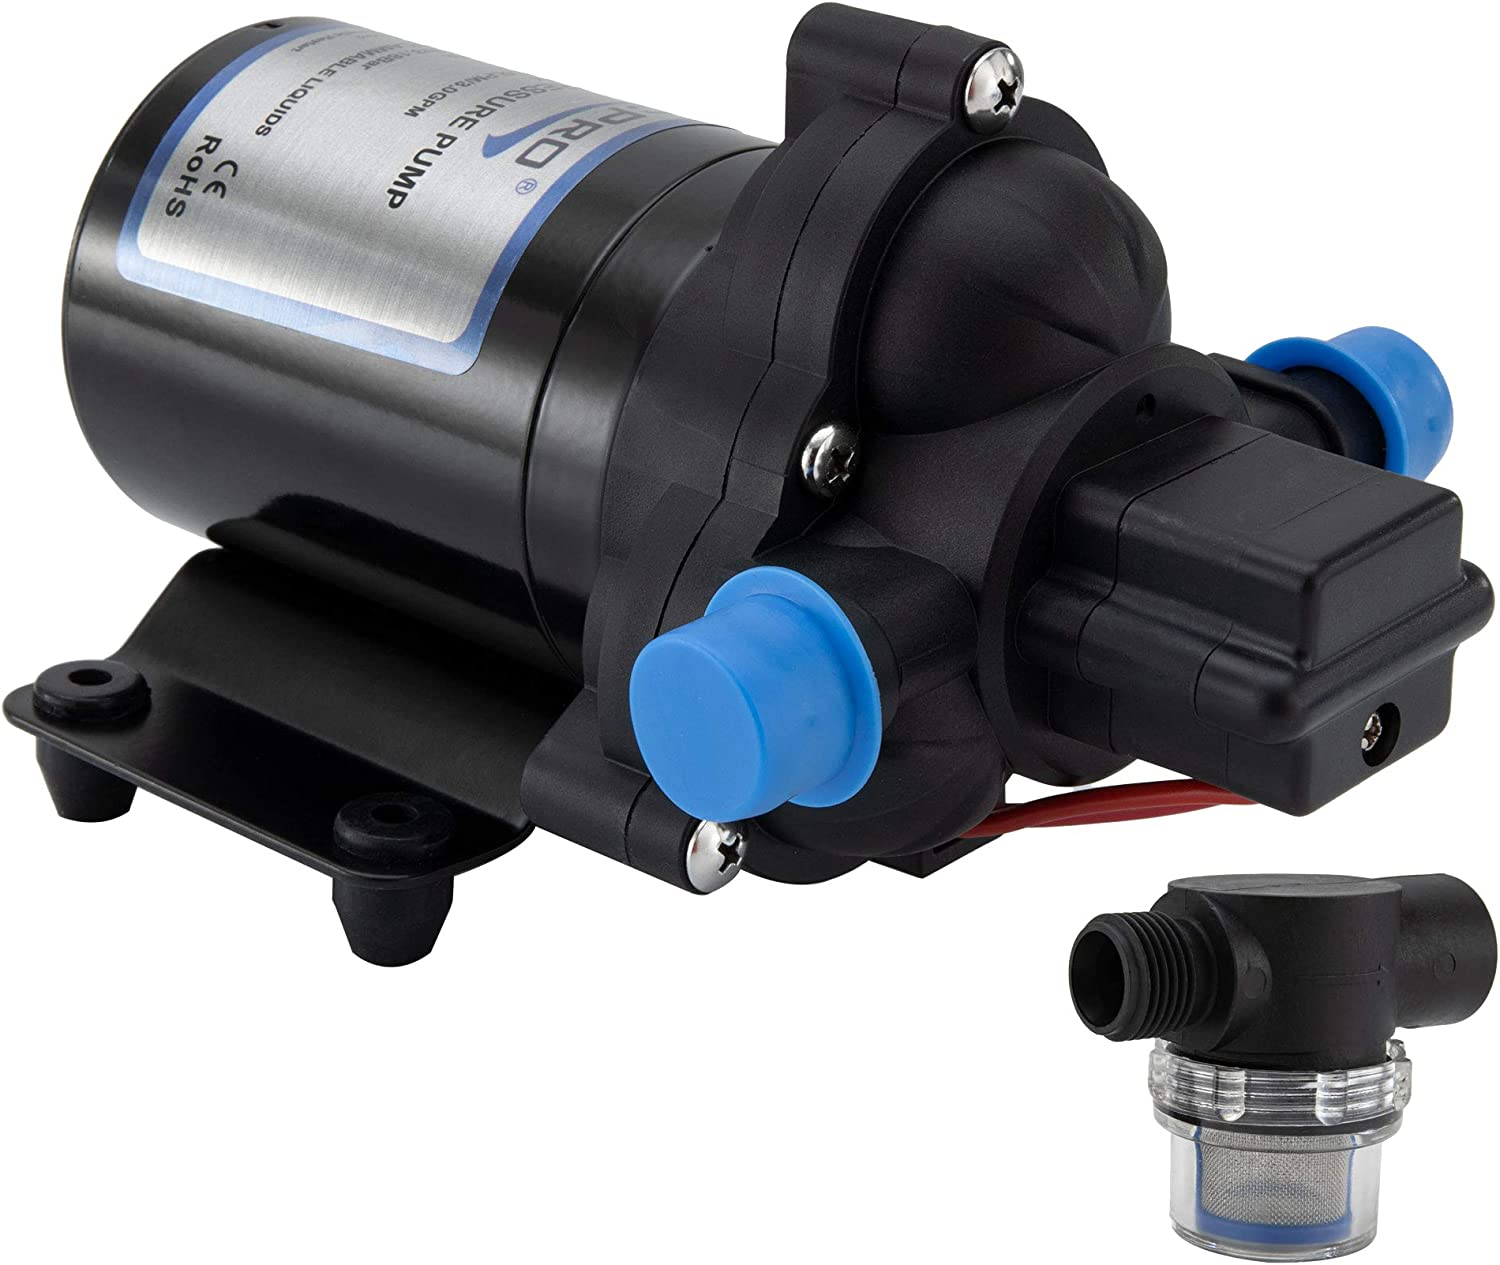 All items in the store Max 69% OFF RecPro RV Water Pump 3.0 GPM 12V Cam Self-Prime